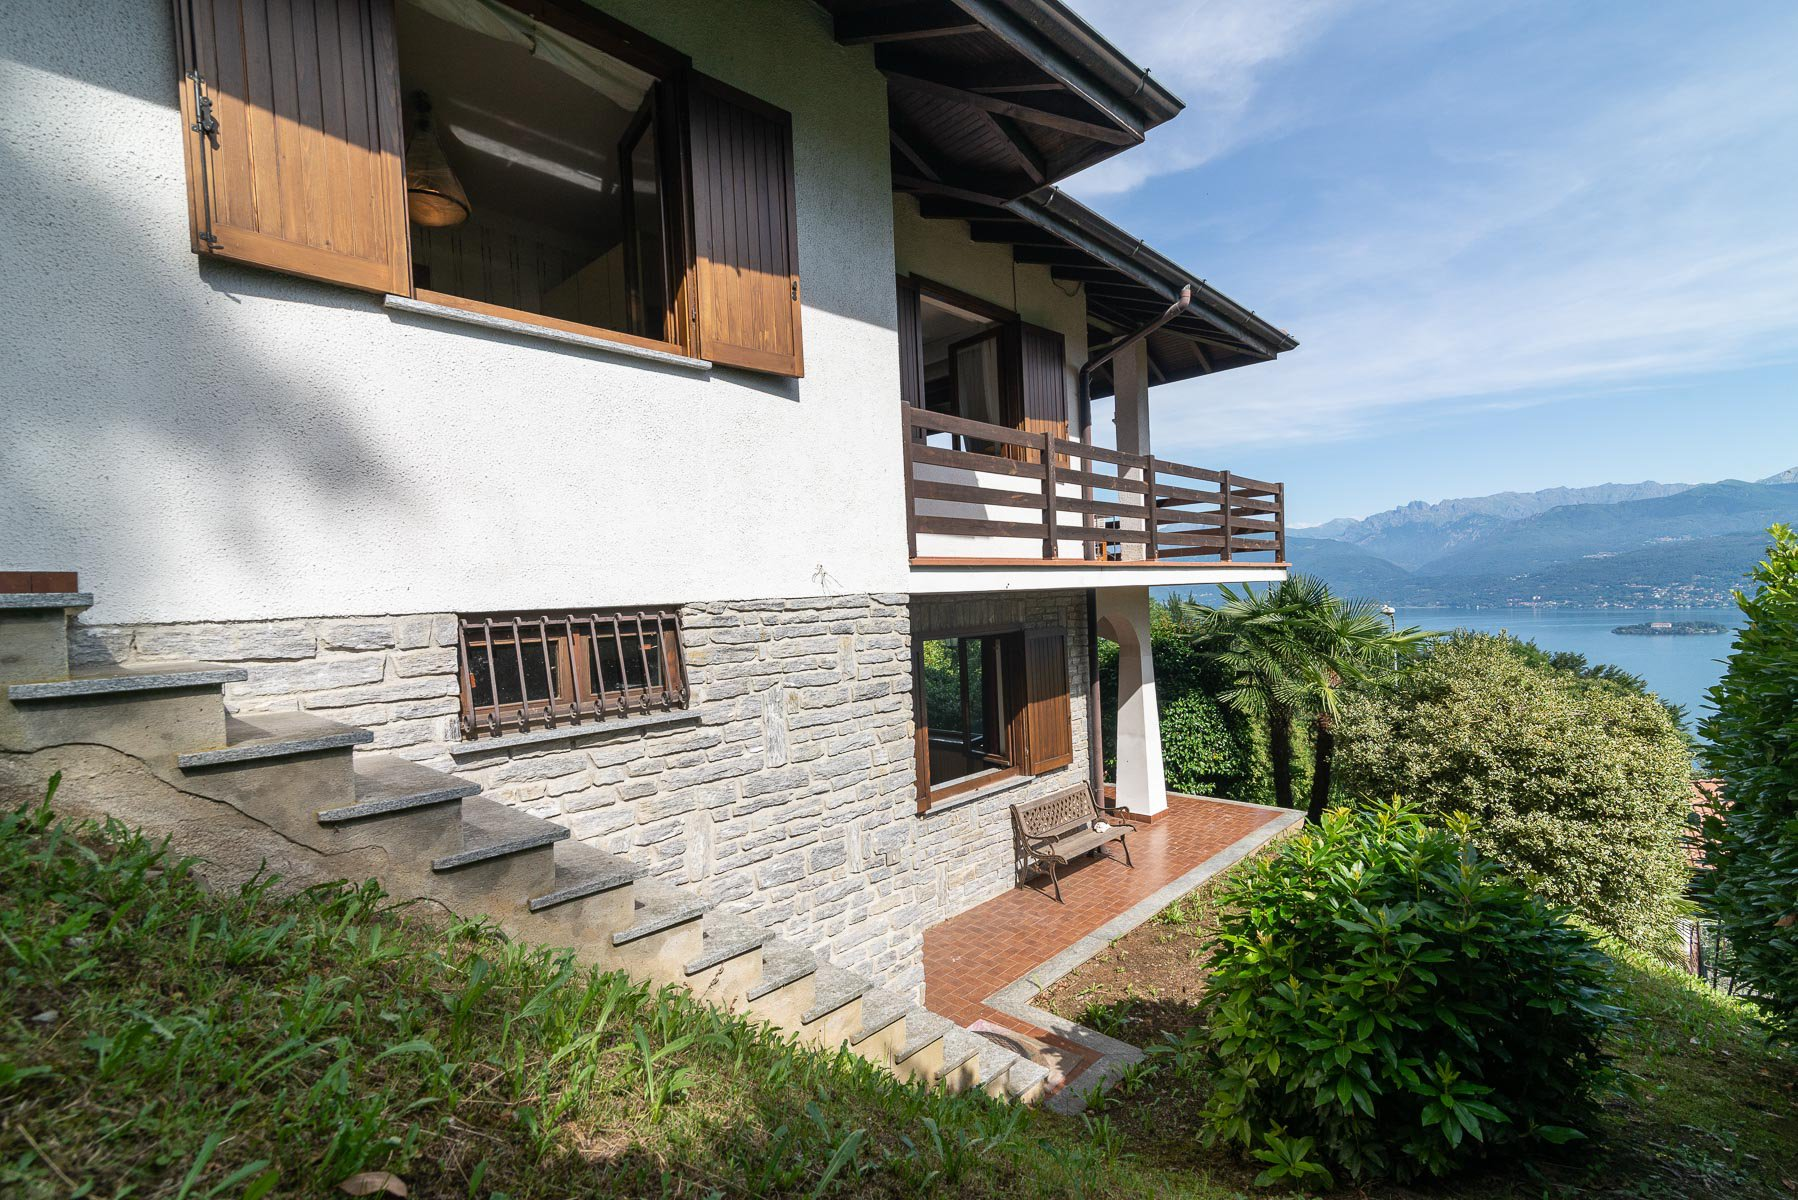 villa for sale on the hill of Stresa with lake view- staircase side